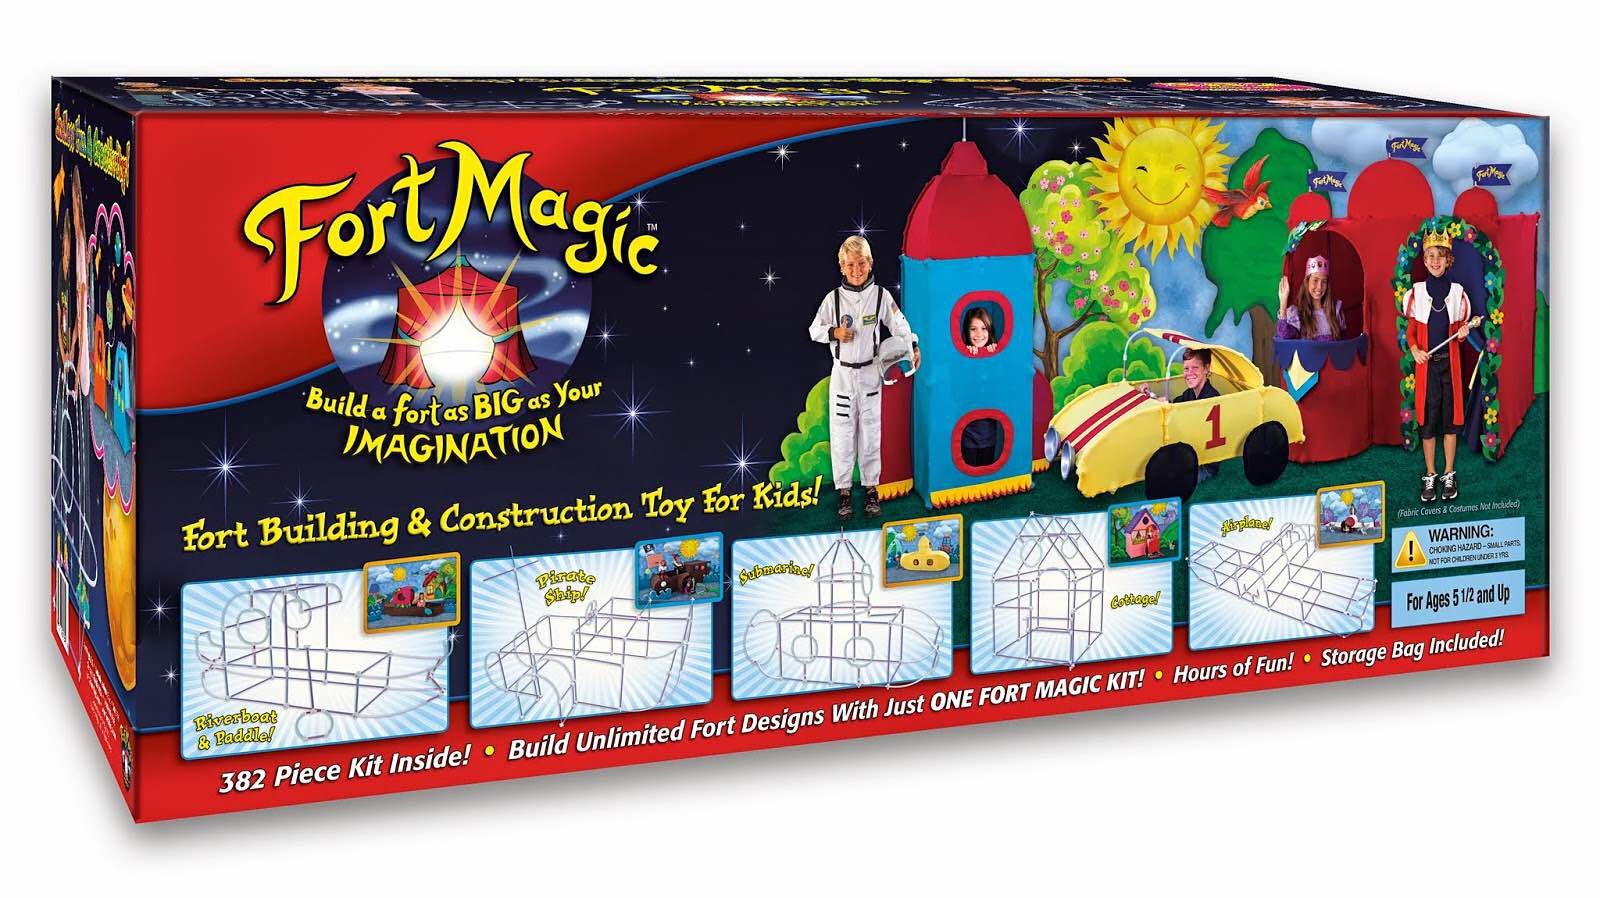 The Fort Magic fort construction kit. ($114)